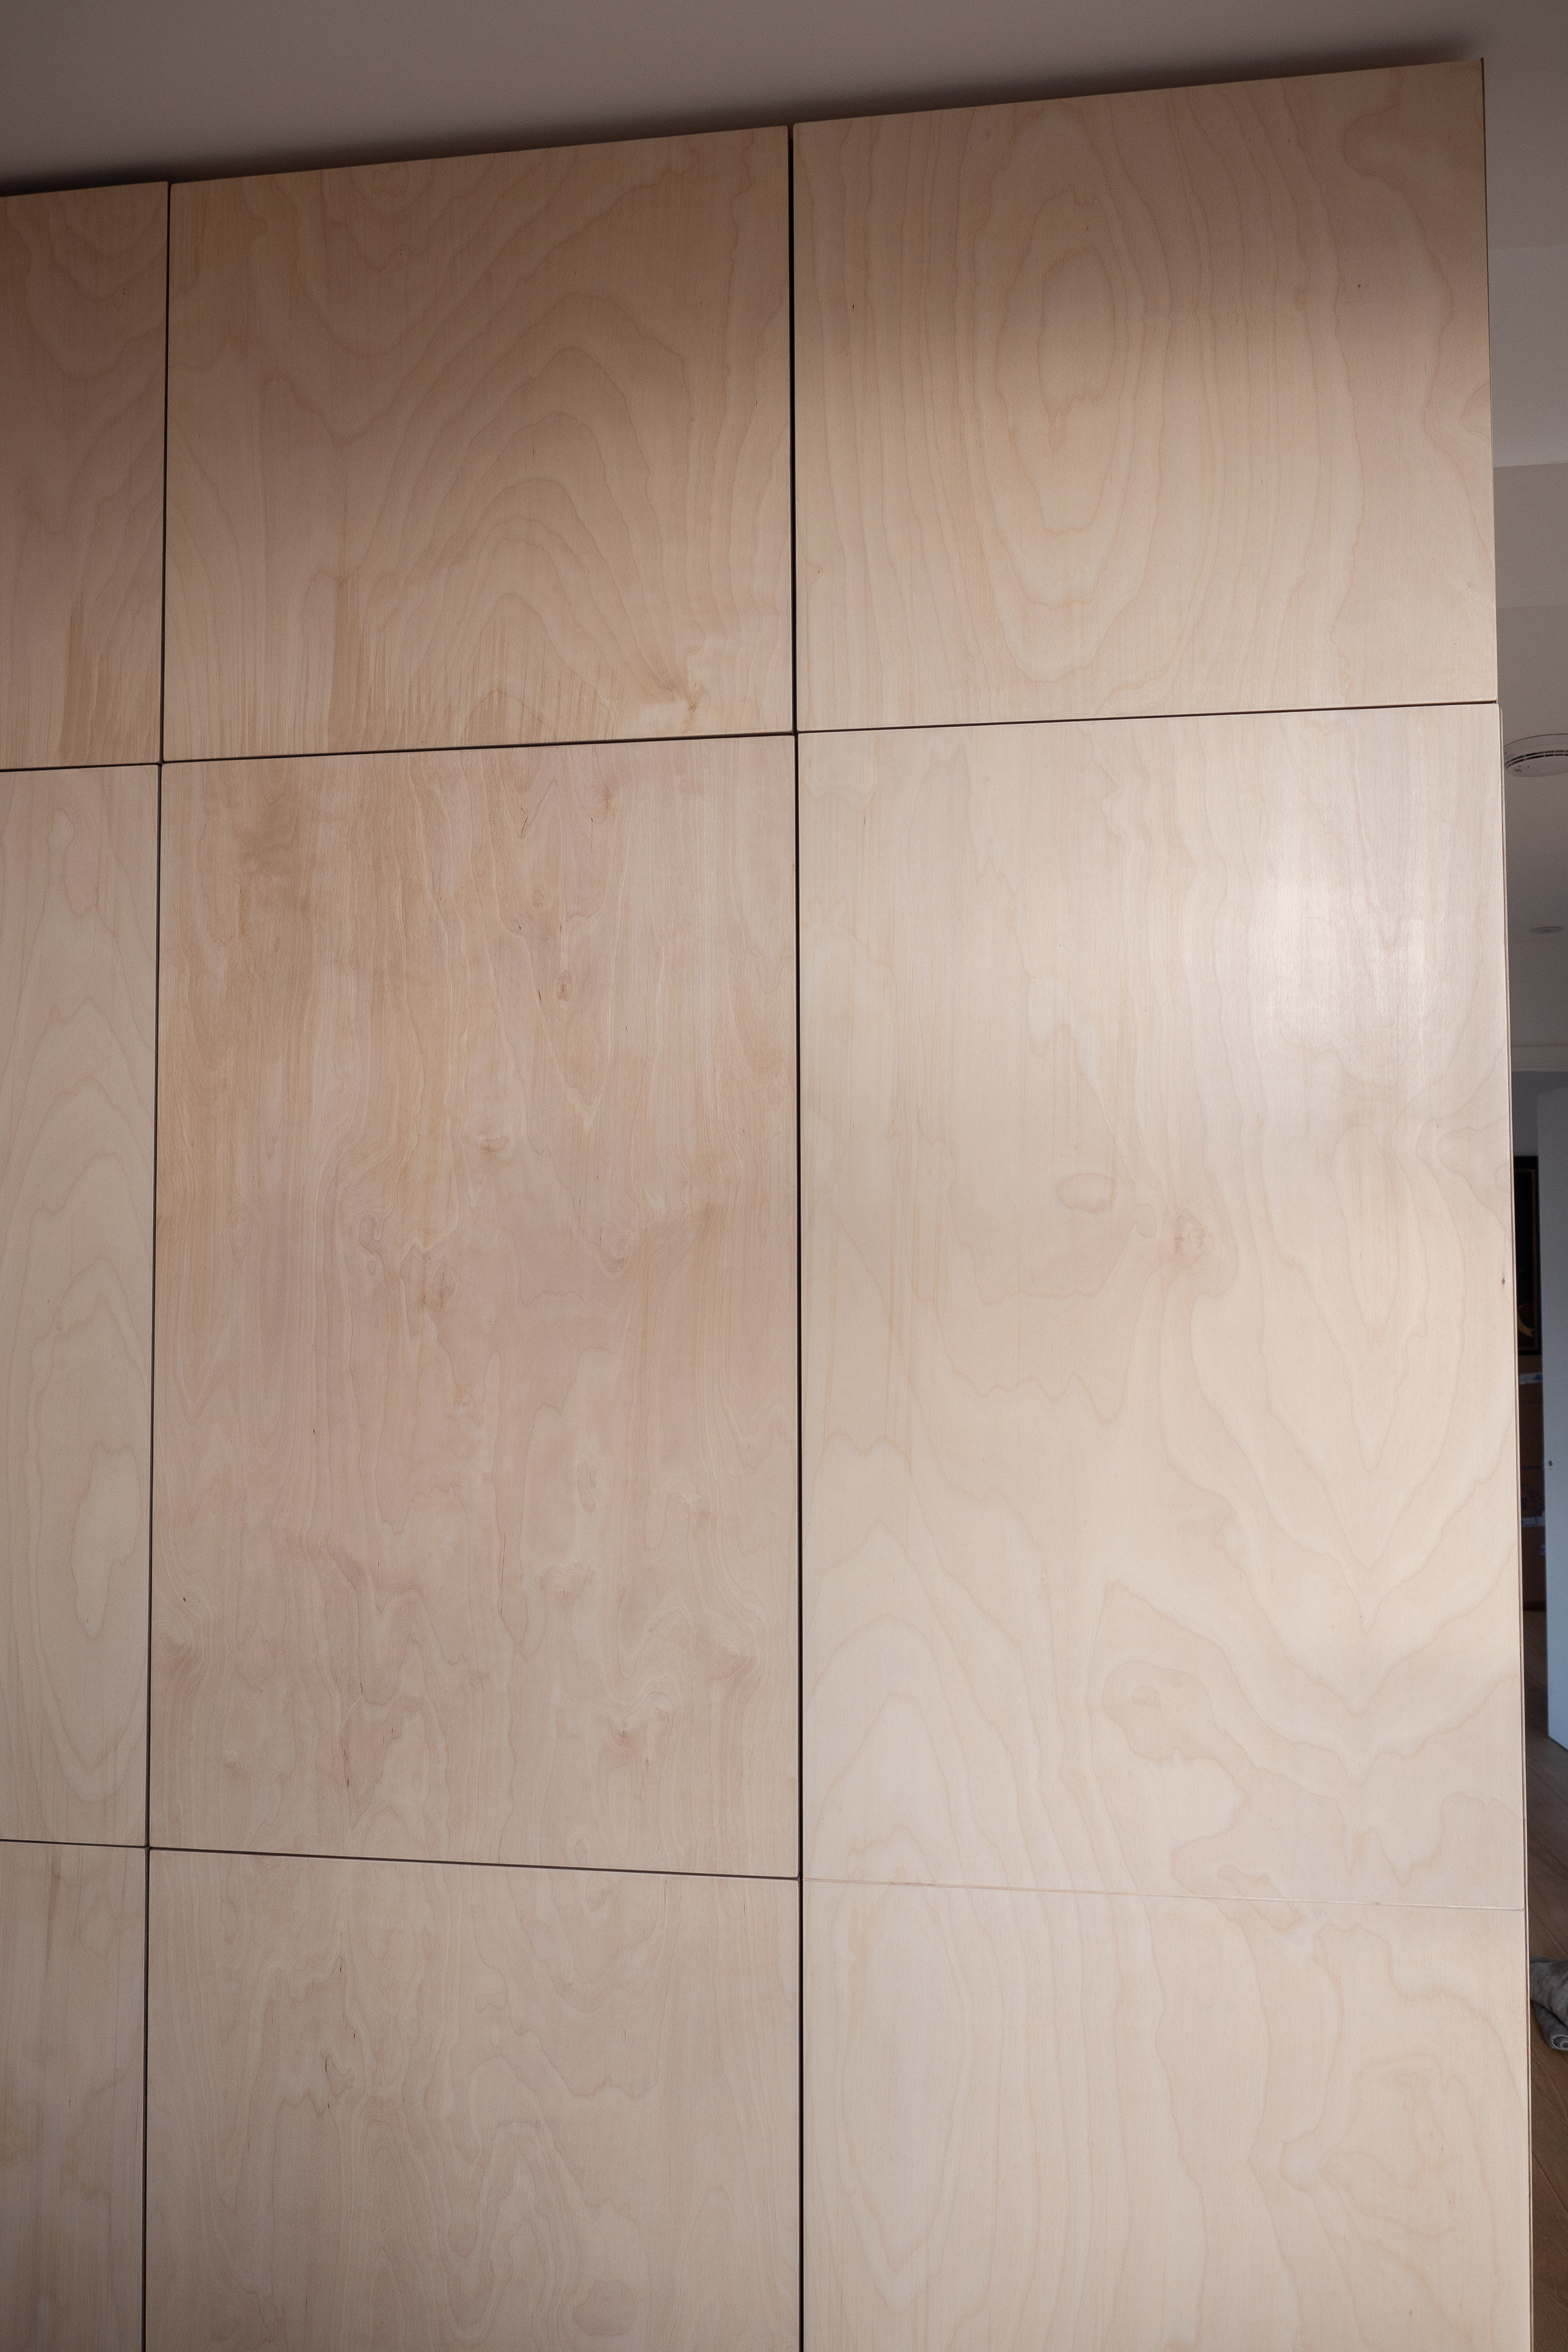 Birch ply doors showing their beautiful finish